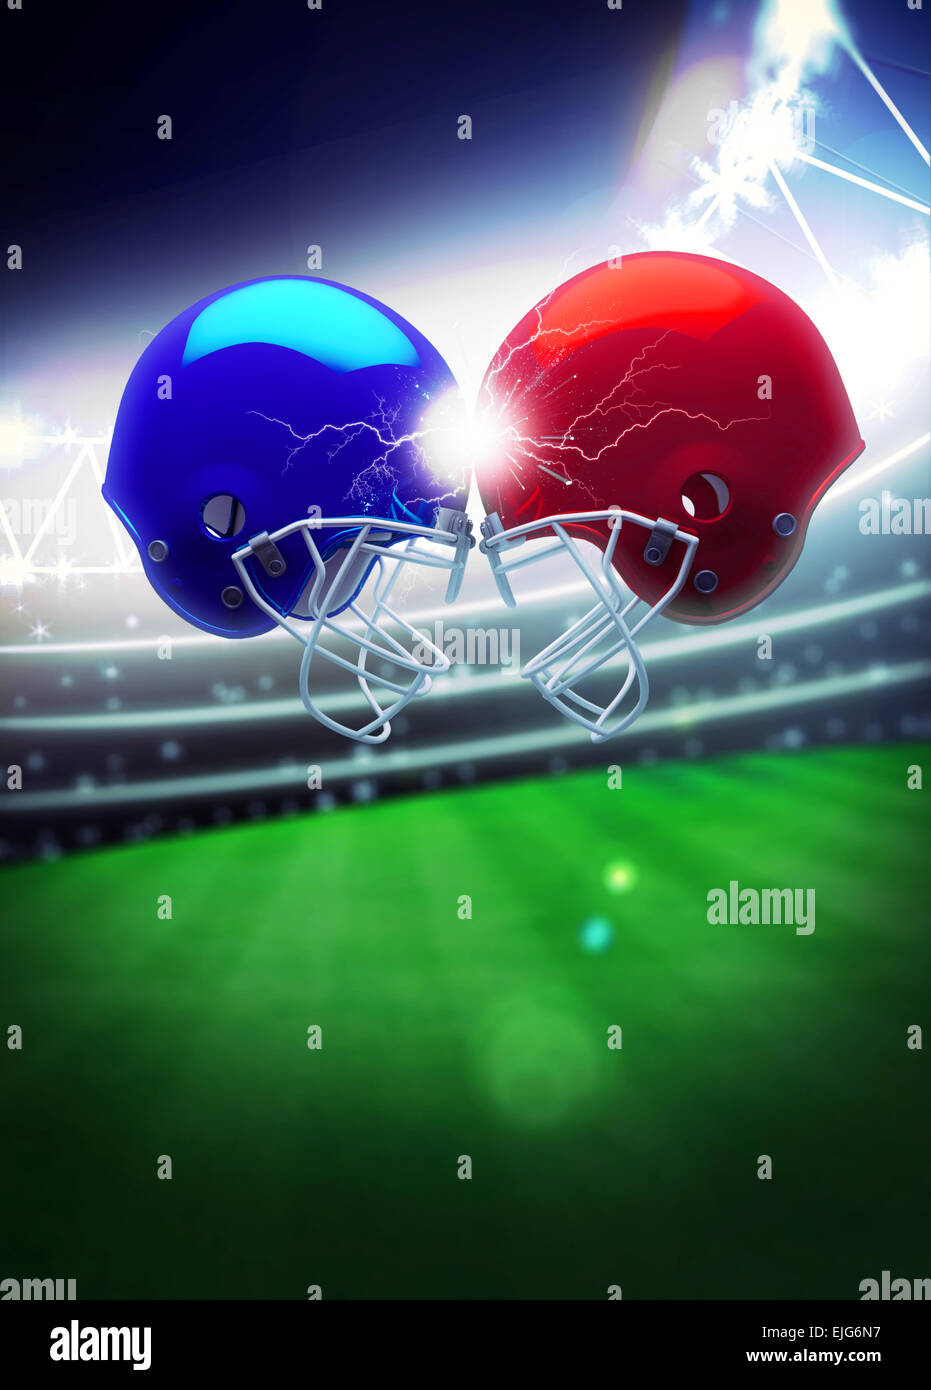 american football sport invitation poster or flyer background with